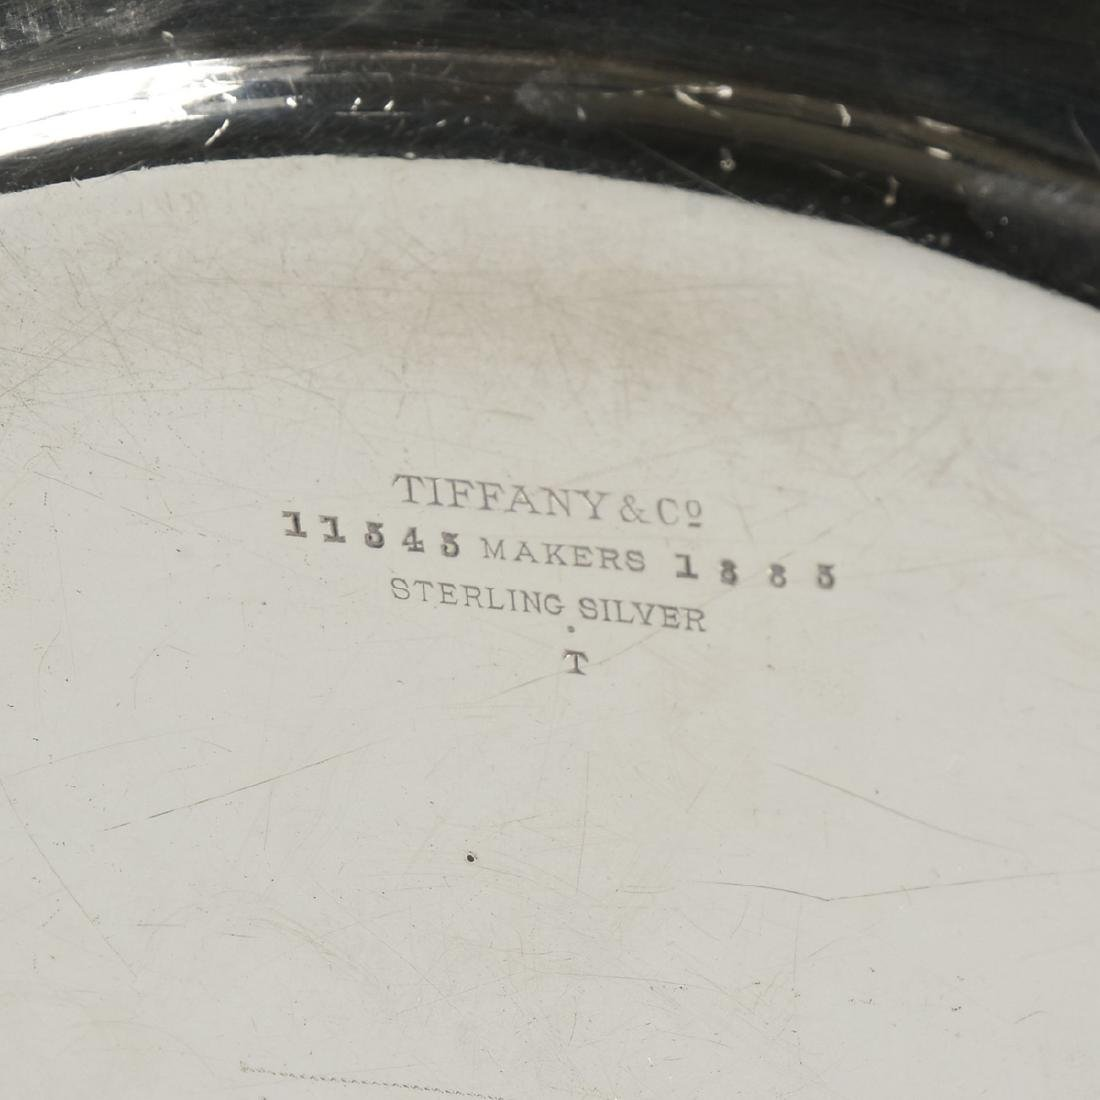 A TIFFANY & CO. STERLING SILVER PLATE, NEW YORK, NEW - 3